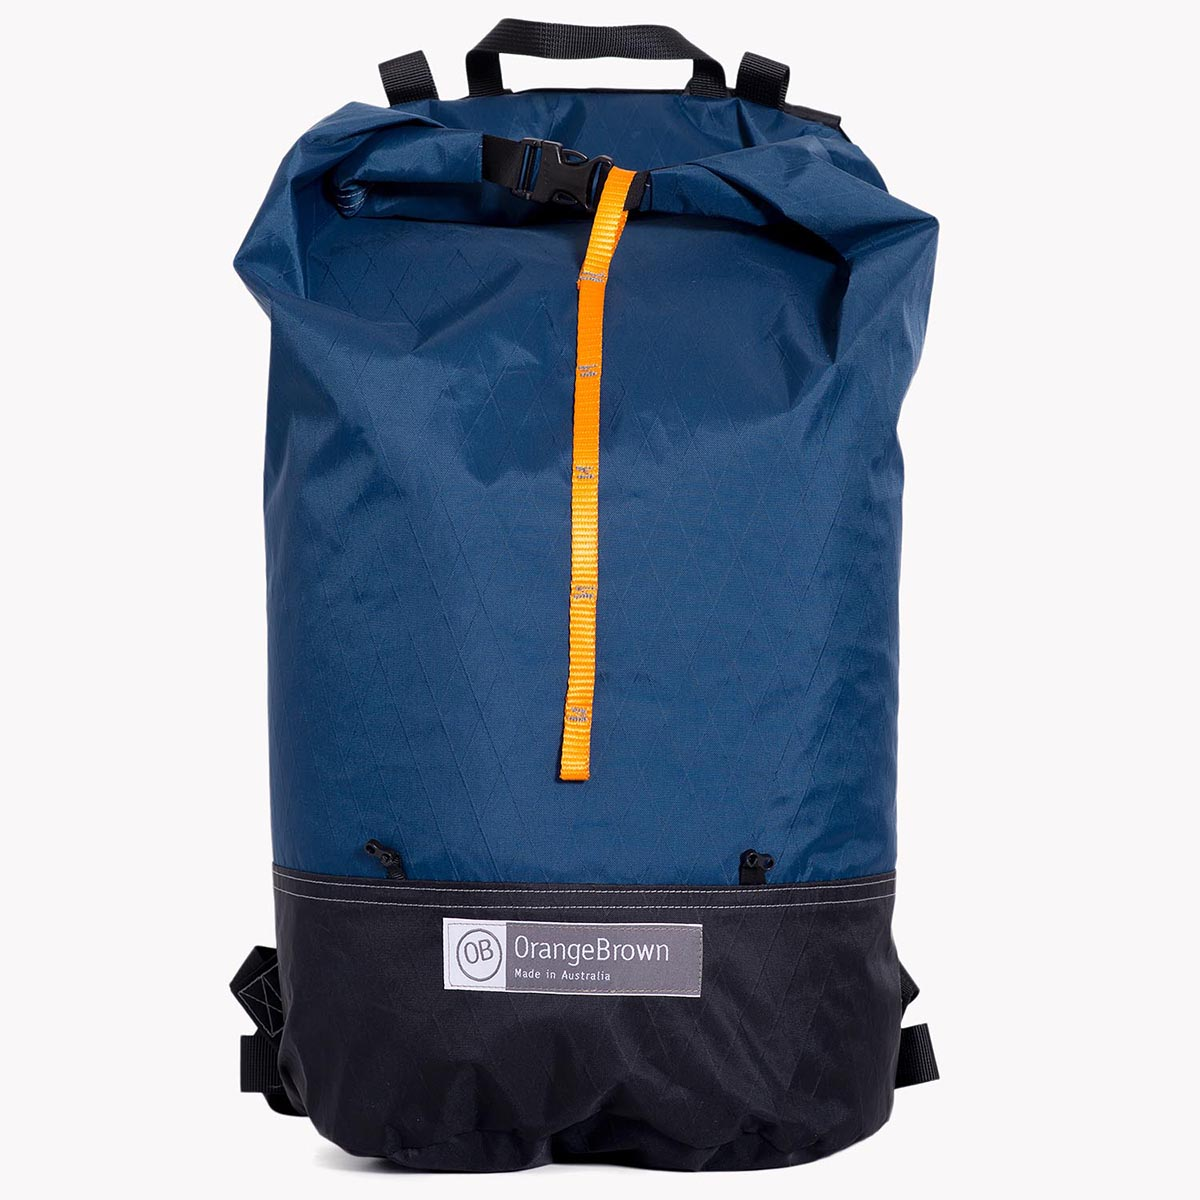 Australian made backpack for day hikes and bush walks. Made in Australia from X-Pac fabric in blue.